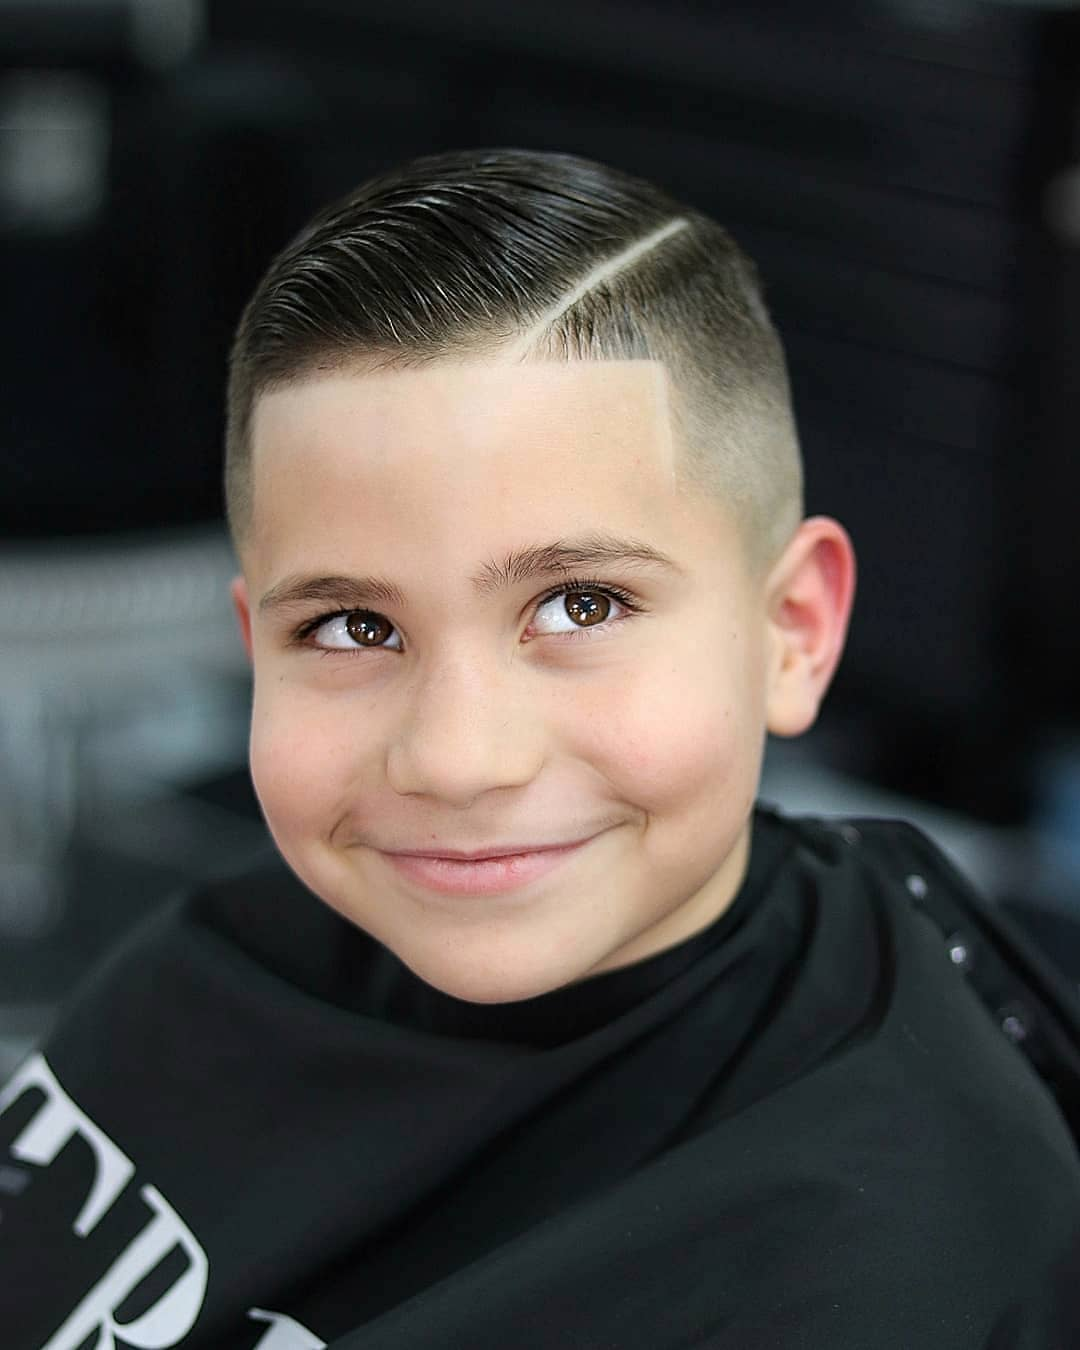 Comb Over + Hard Part - New Hairstyle for Boys